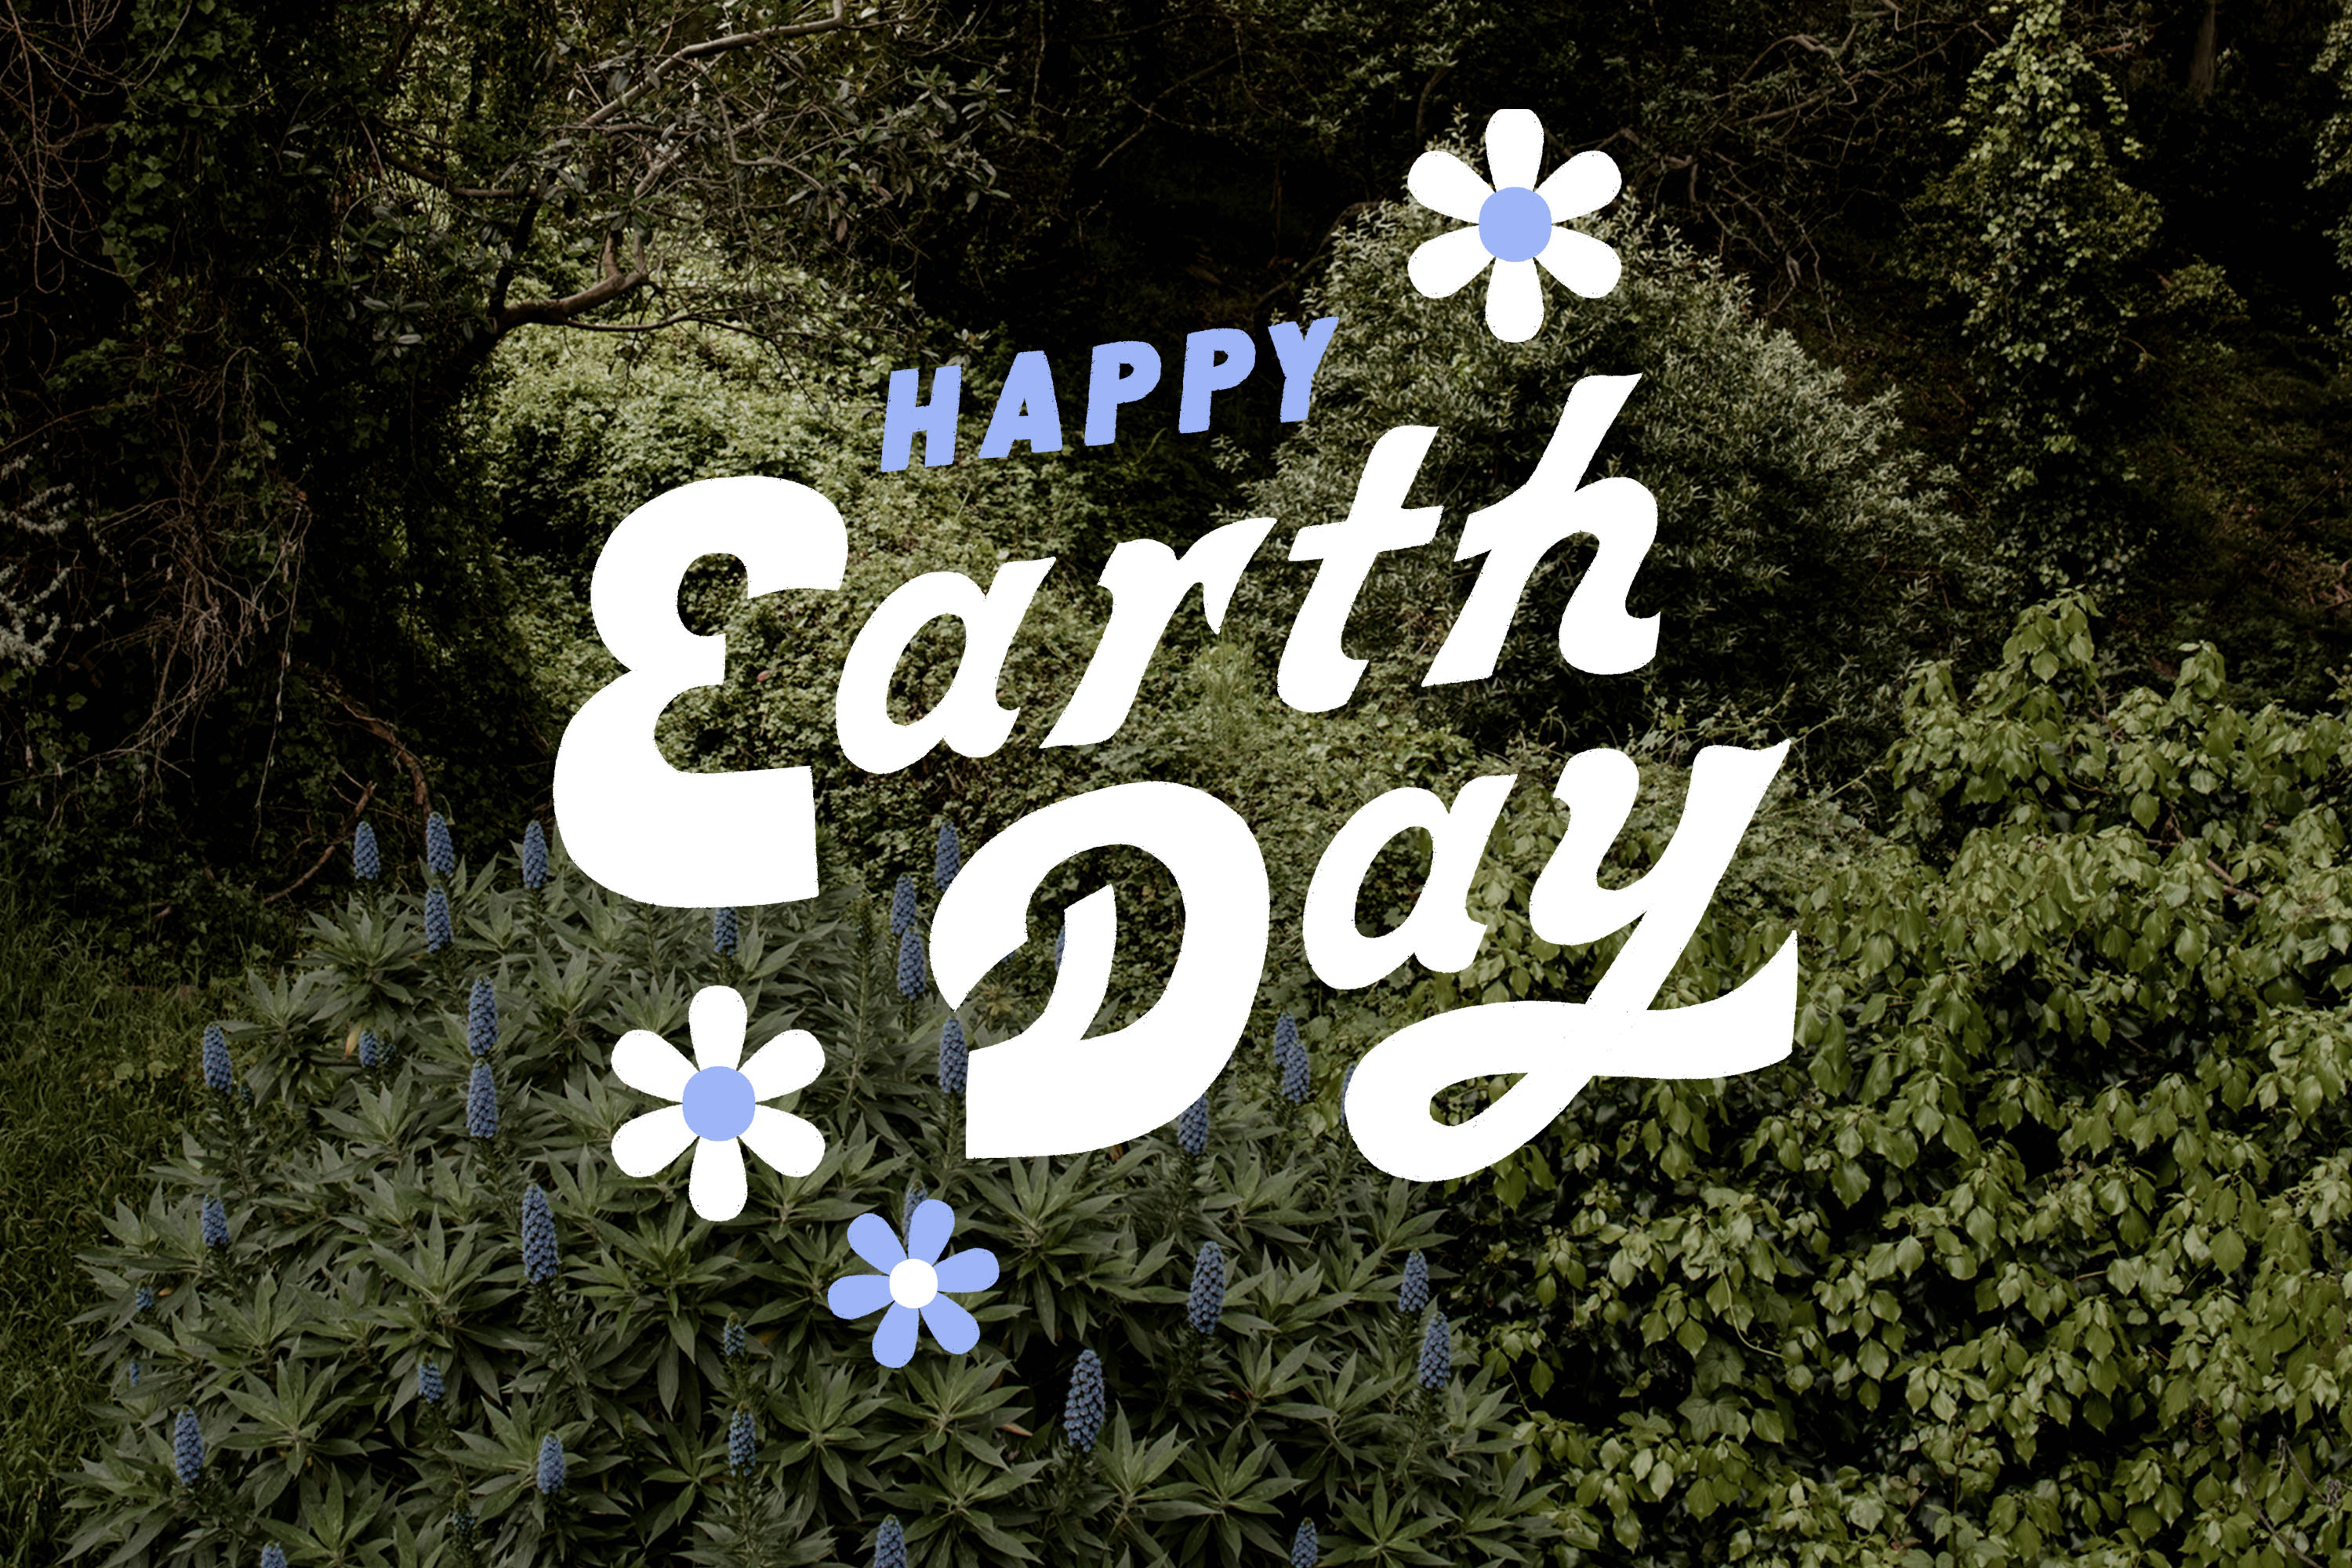 Best Earth Day 2019 activities in San Francisco